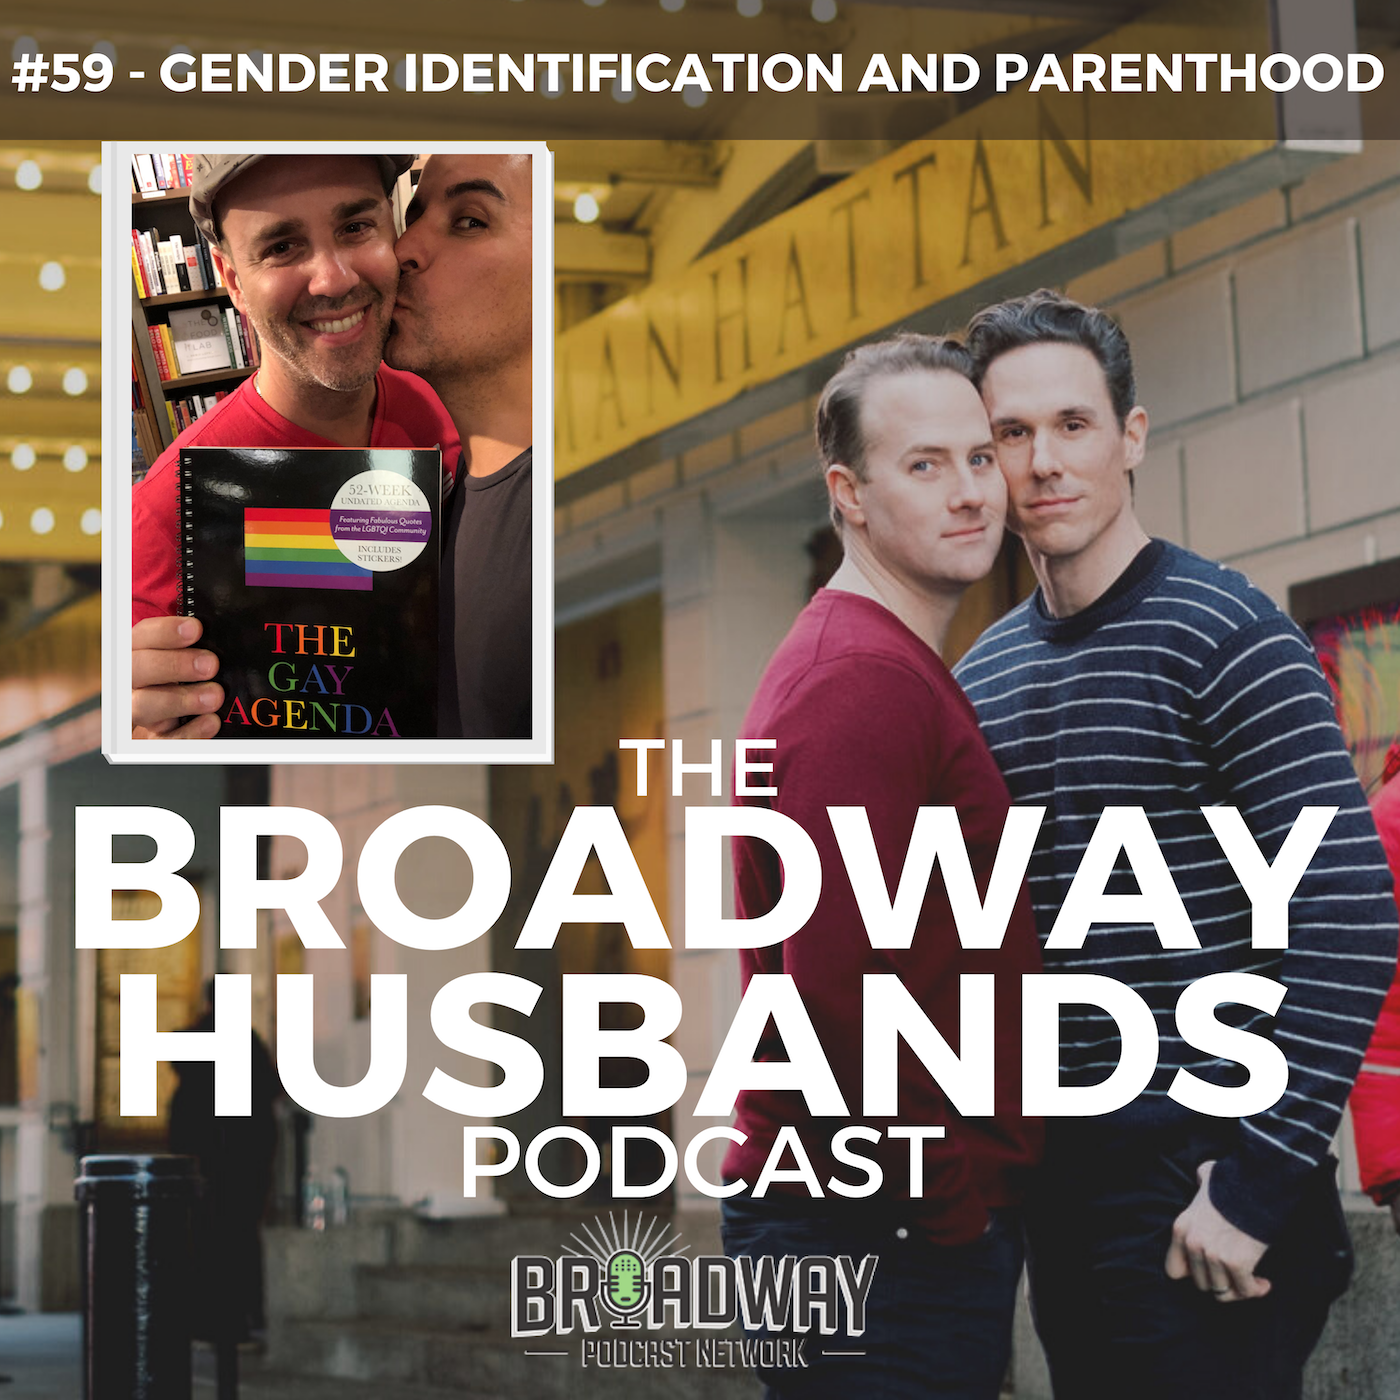 #59 - Gender Identity and Parenthood